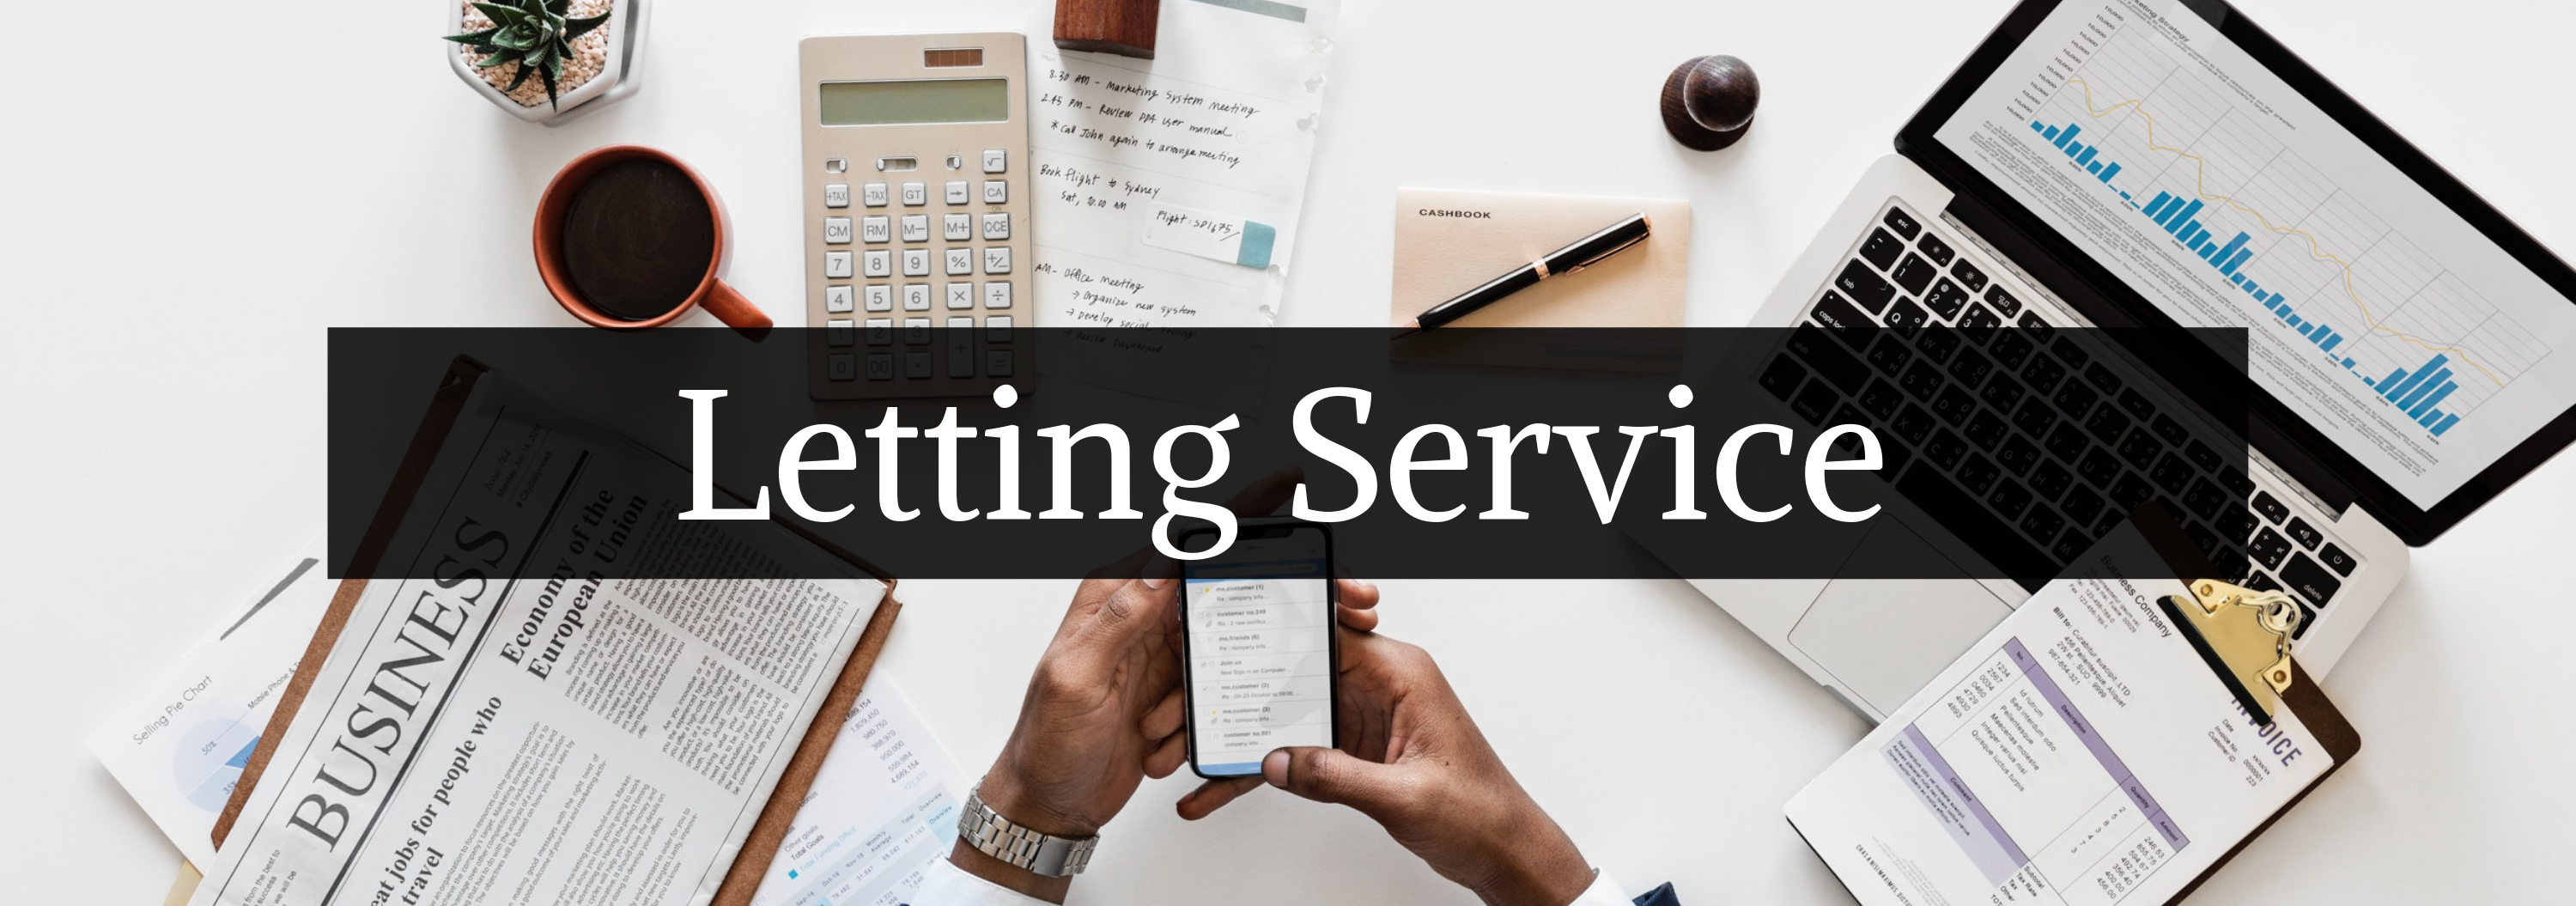 Letting Service